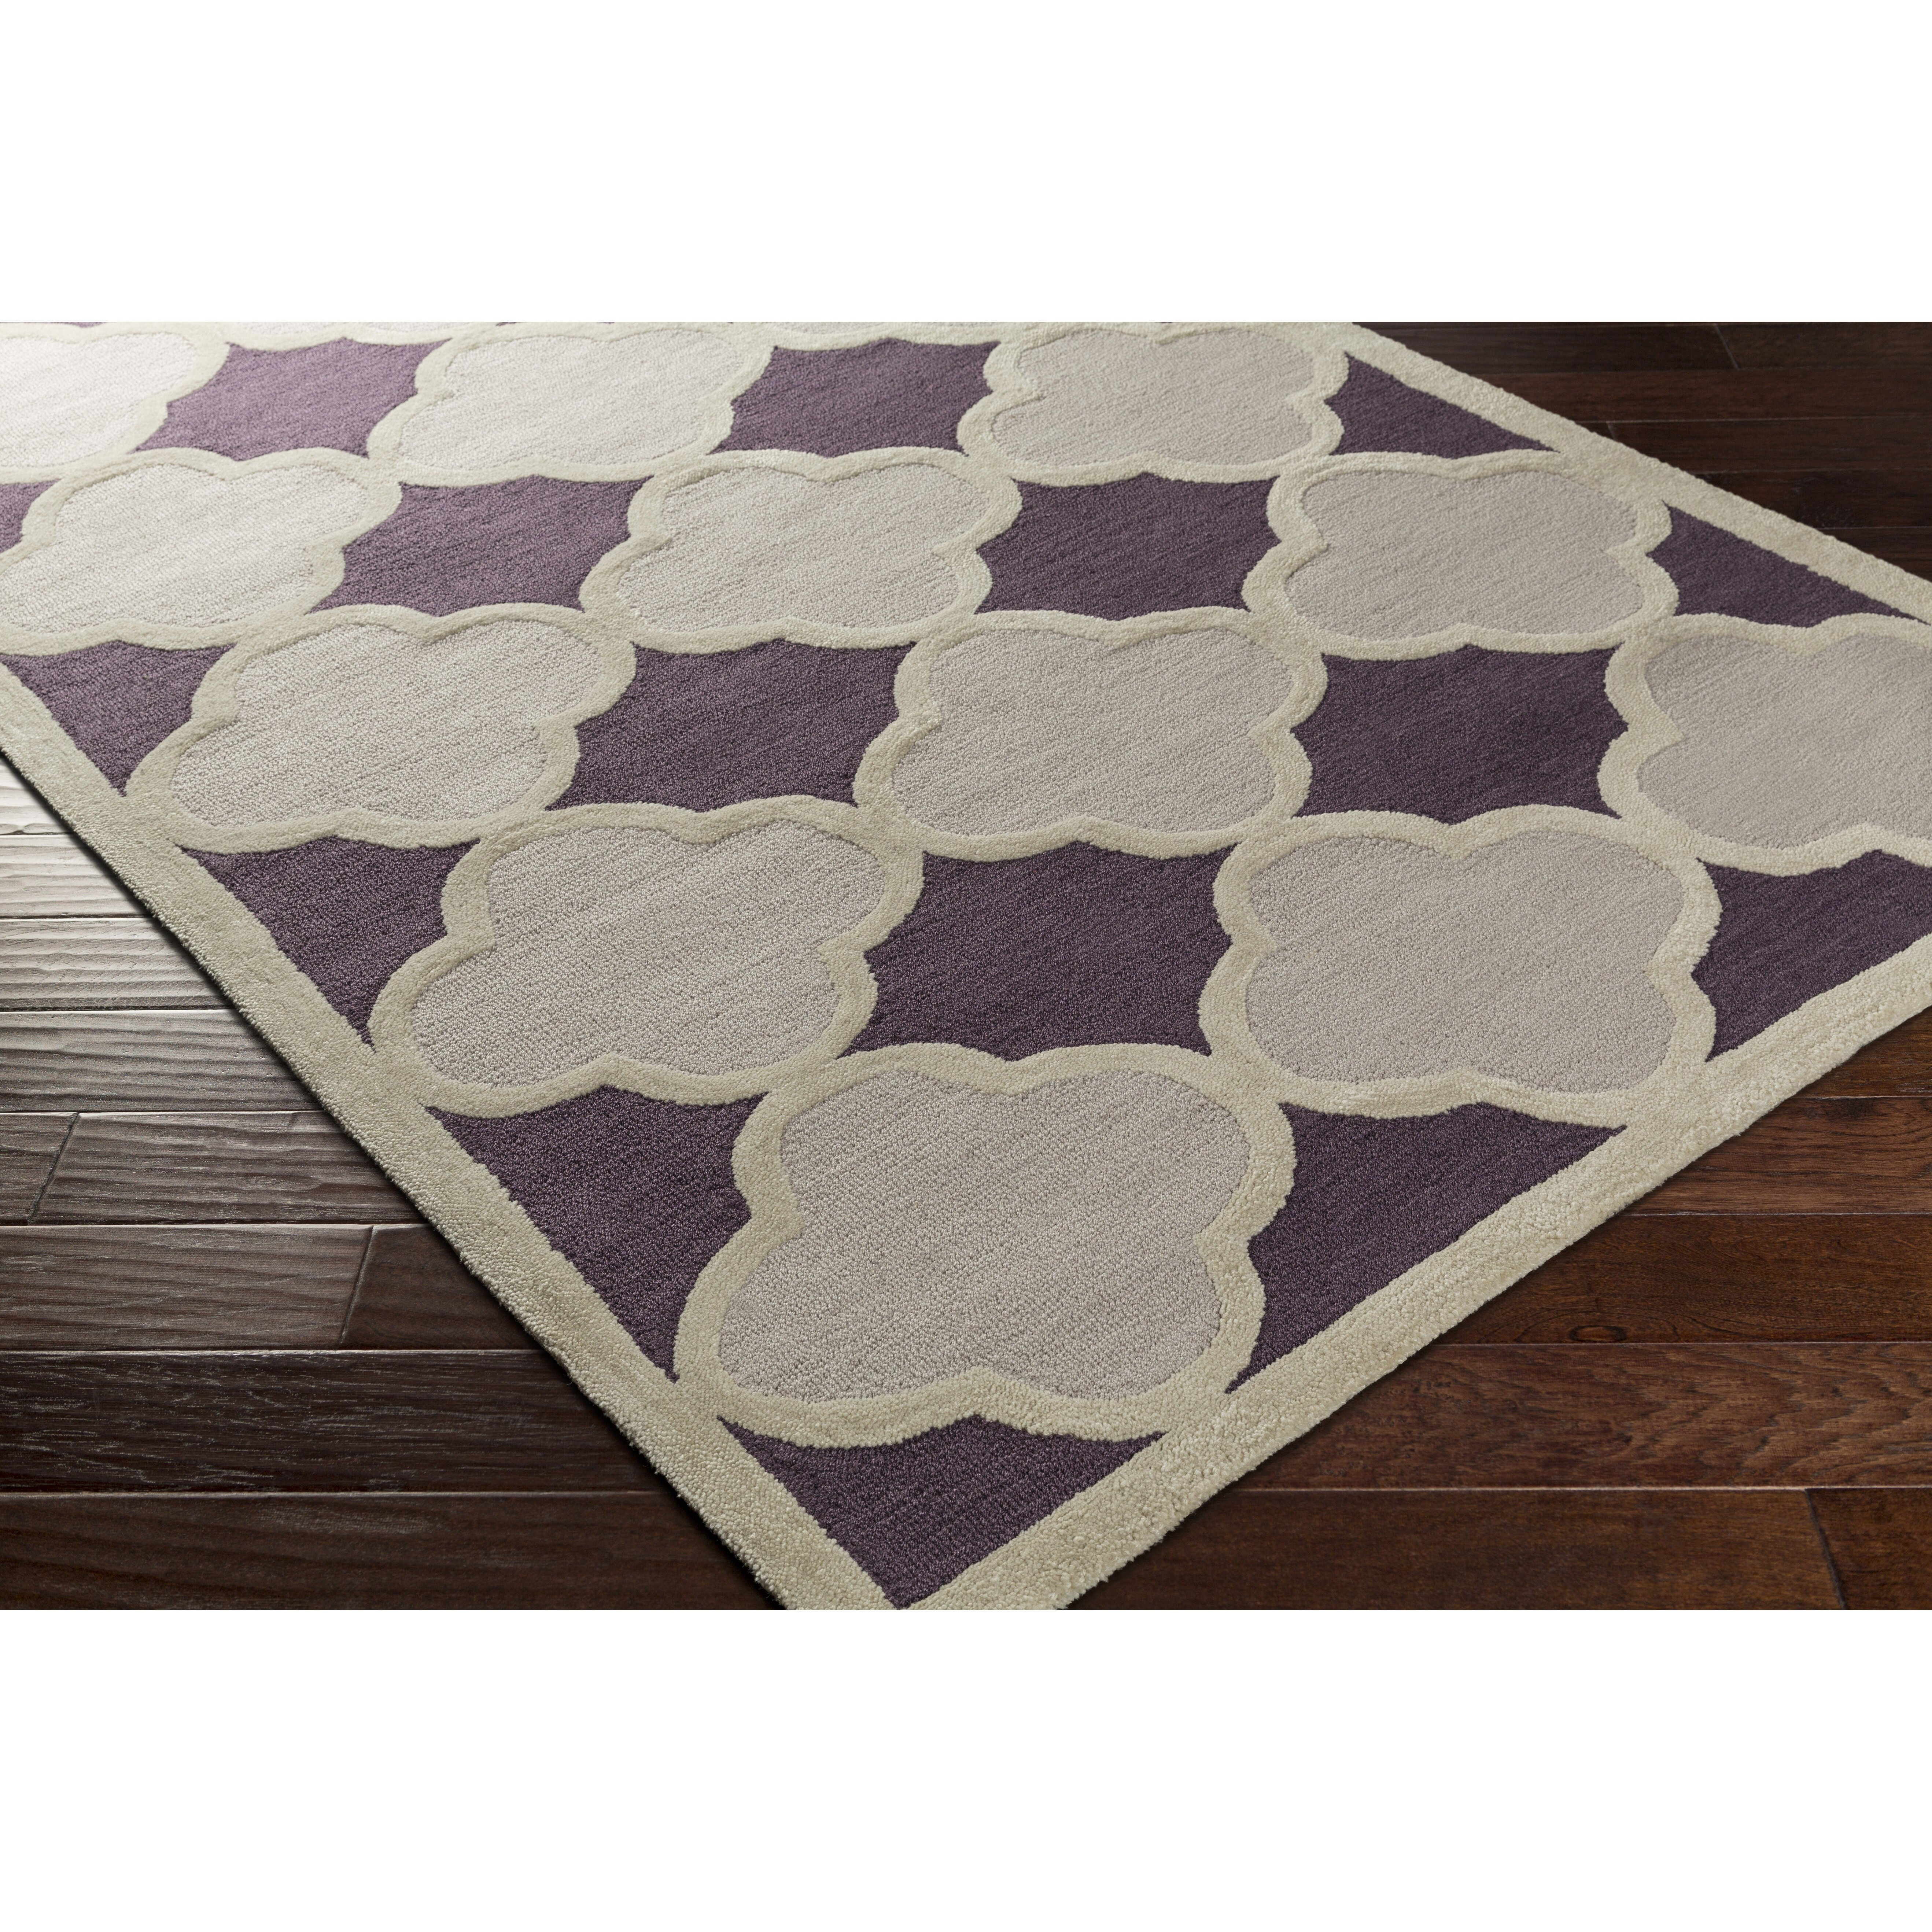 Purple And Gray Area Rugs: Artistic Weavers Holden Maisie Purple/Gray Area Rug